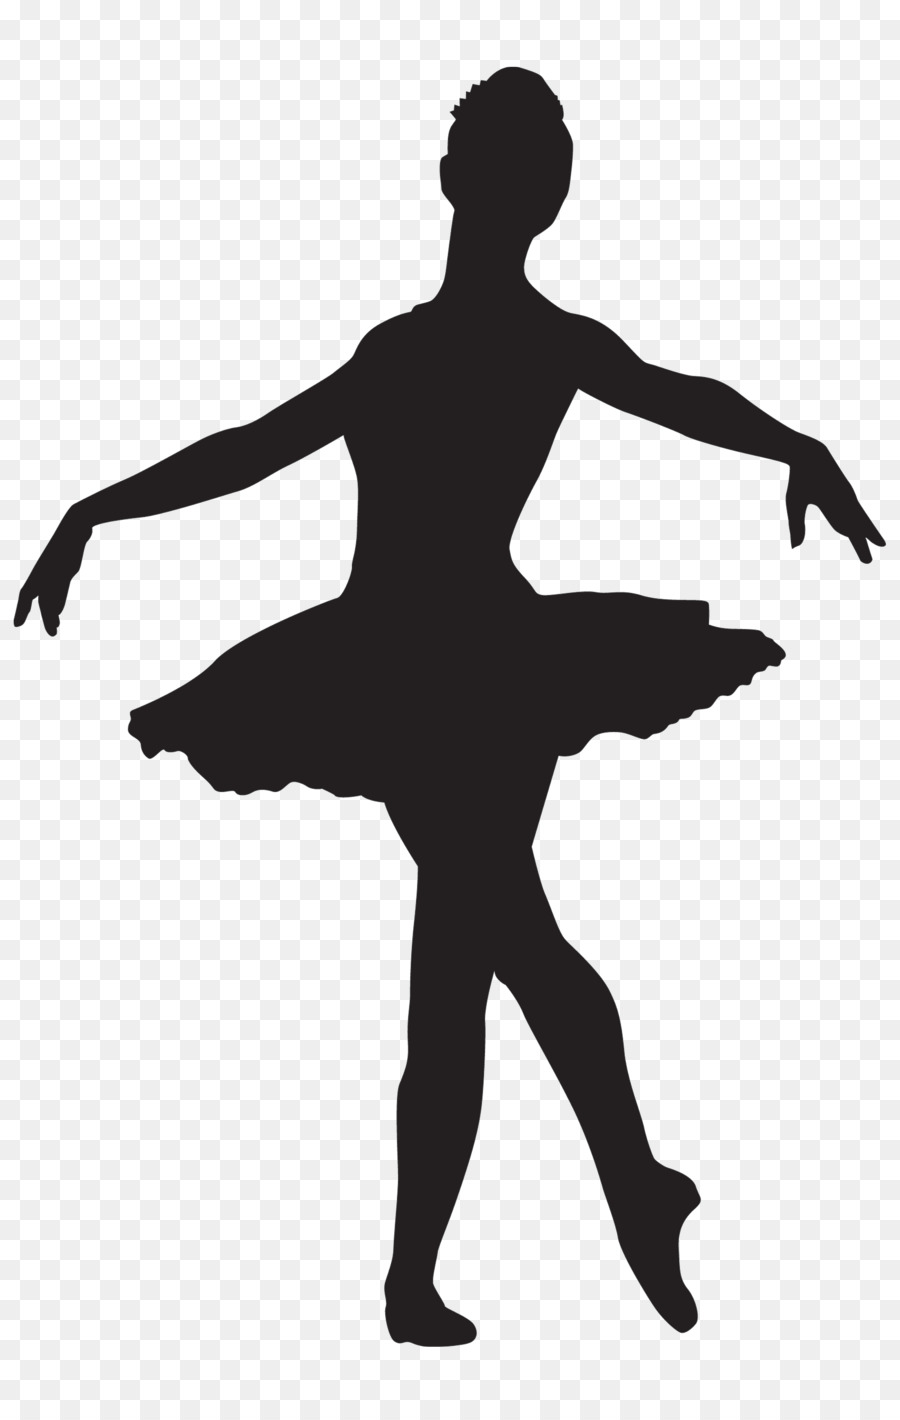 Girl Cartoon Png Download 2100 3300 Free Transparent Ballet Dancer Png Download Cleanpng Kisspng